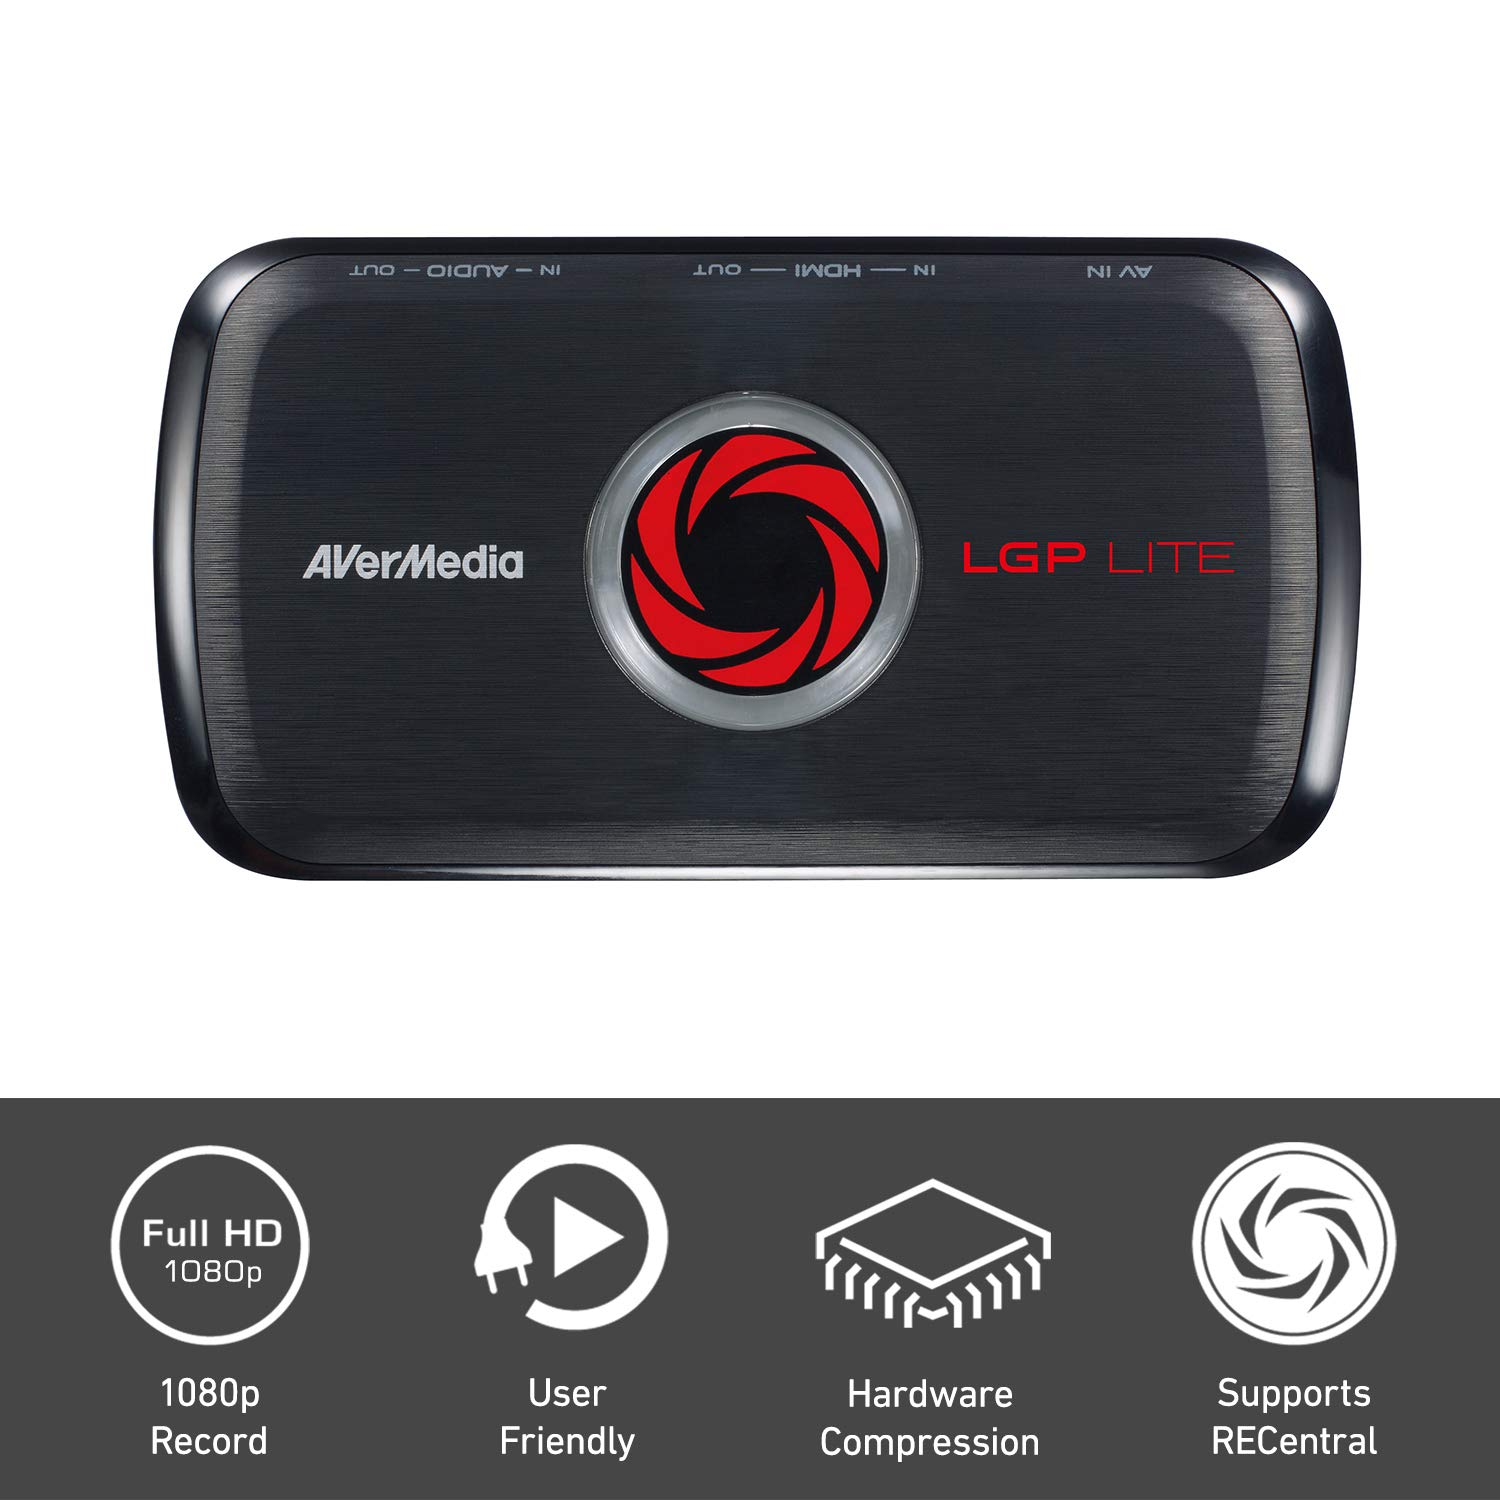 AVerMedia AVerCapture HD, Game Streaming and Game Capture, High Definition 1080p, Ultra Low Latency, H.264 Hardware Encoding Game Recorder - USB Video Capture (GL310) by AVerMedia Technologies, Inc.